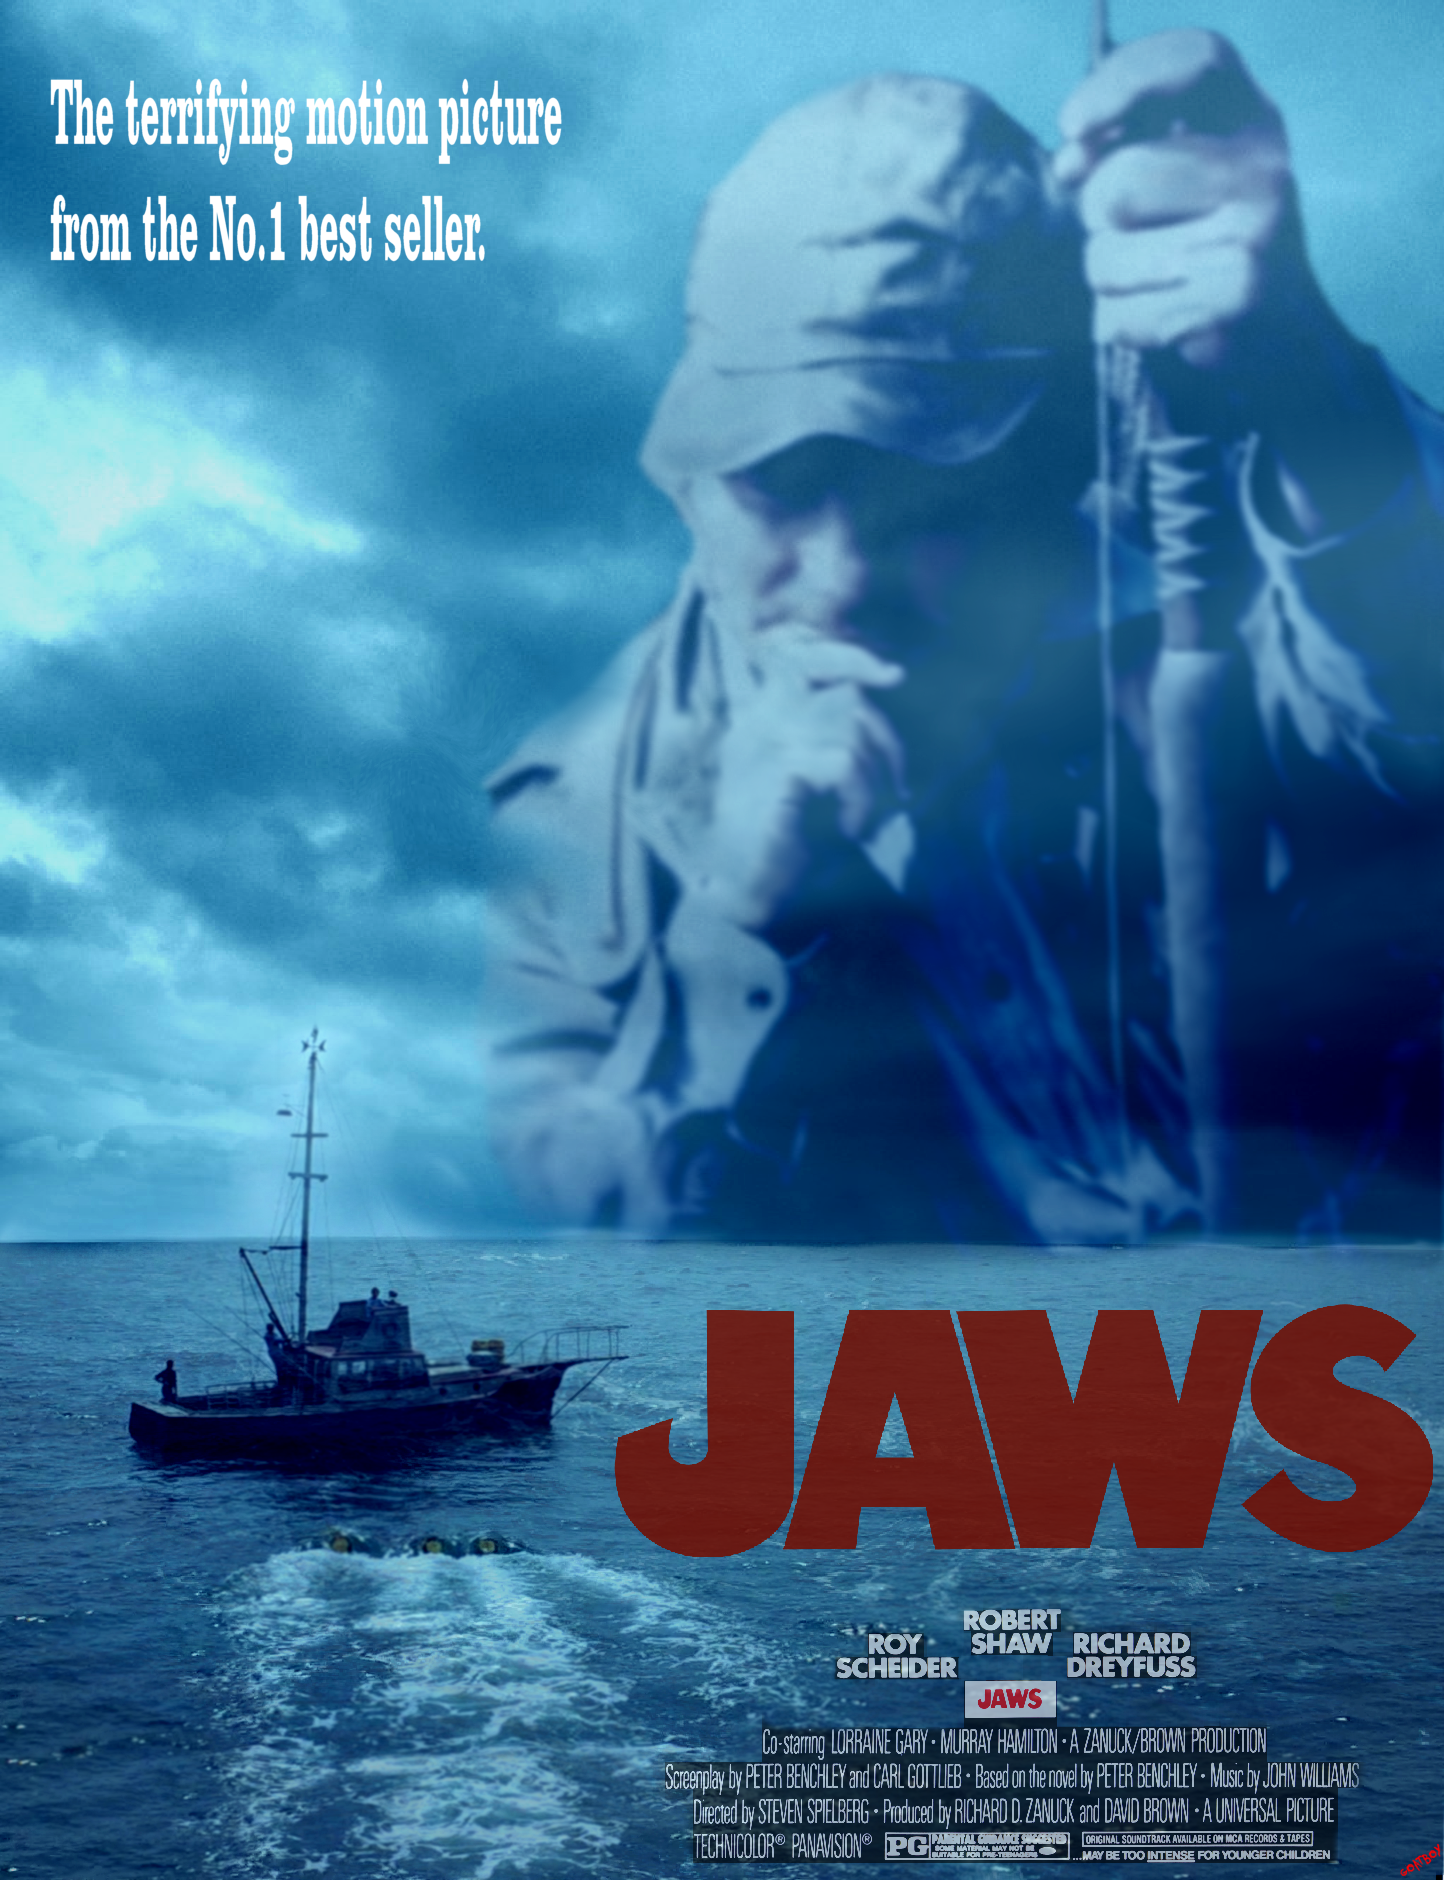 Autographed jaws movie poster